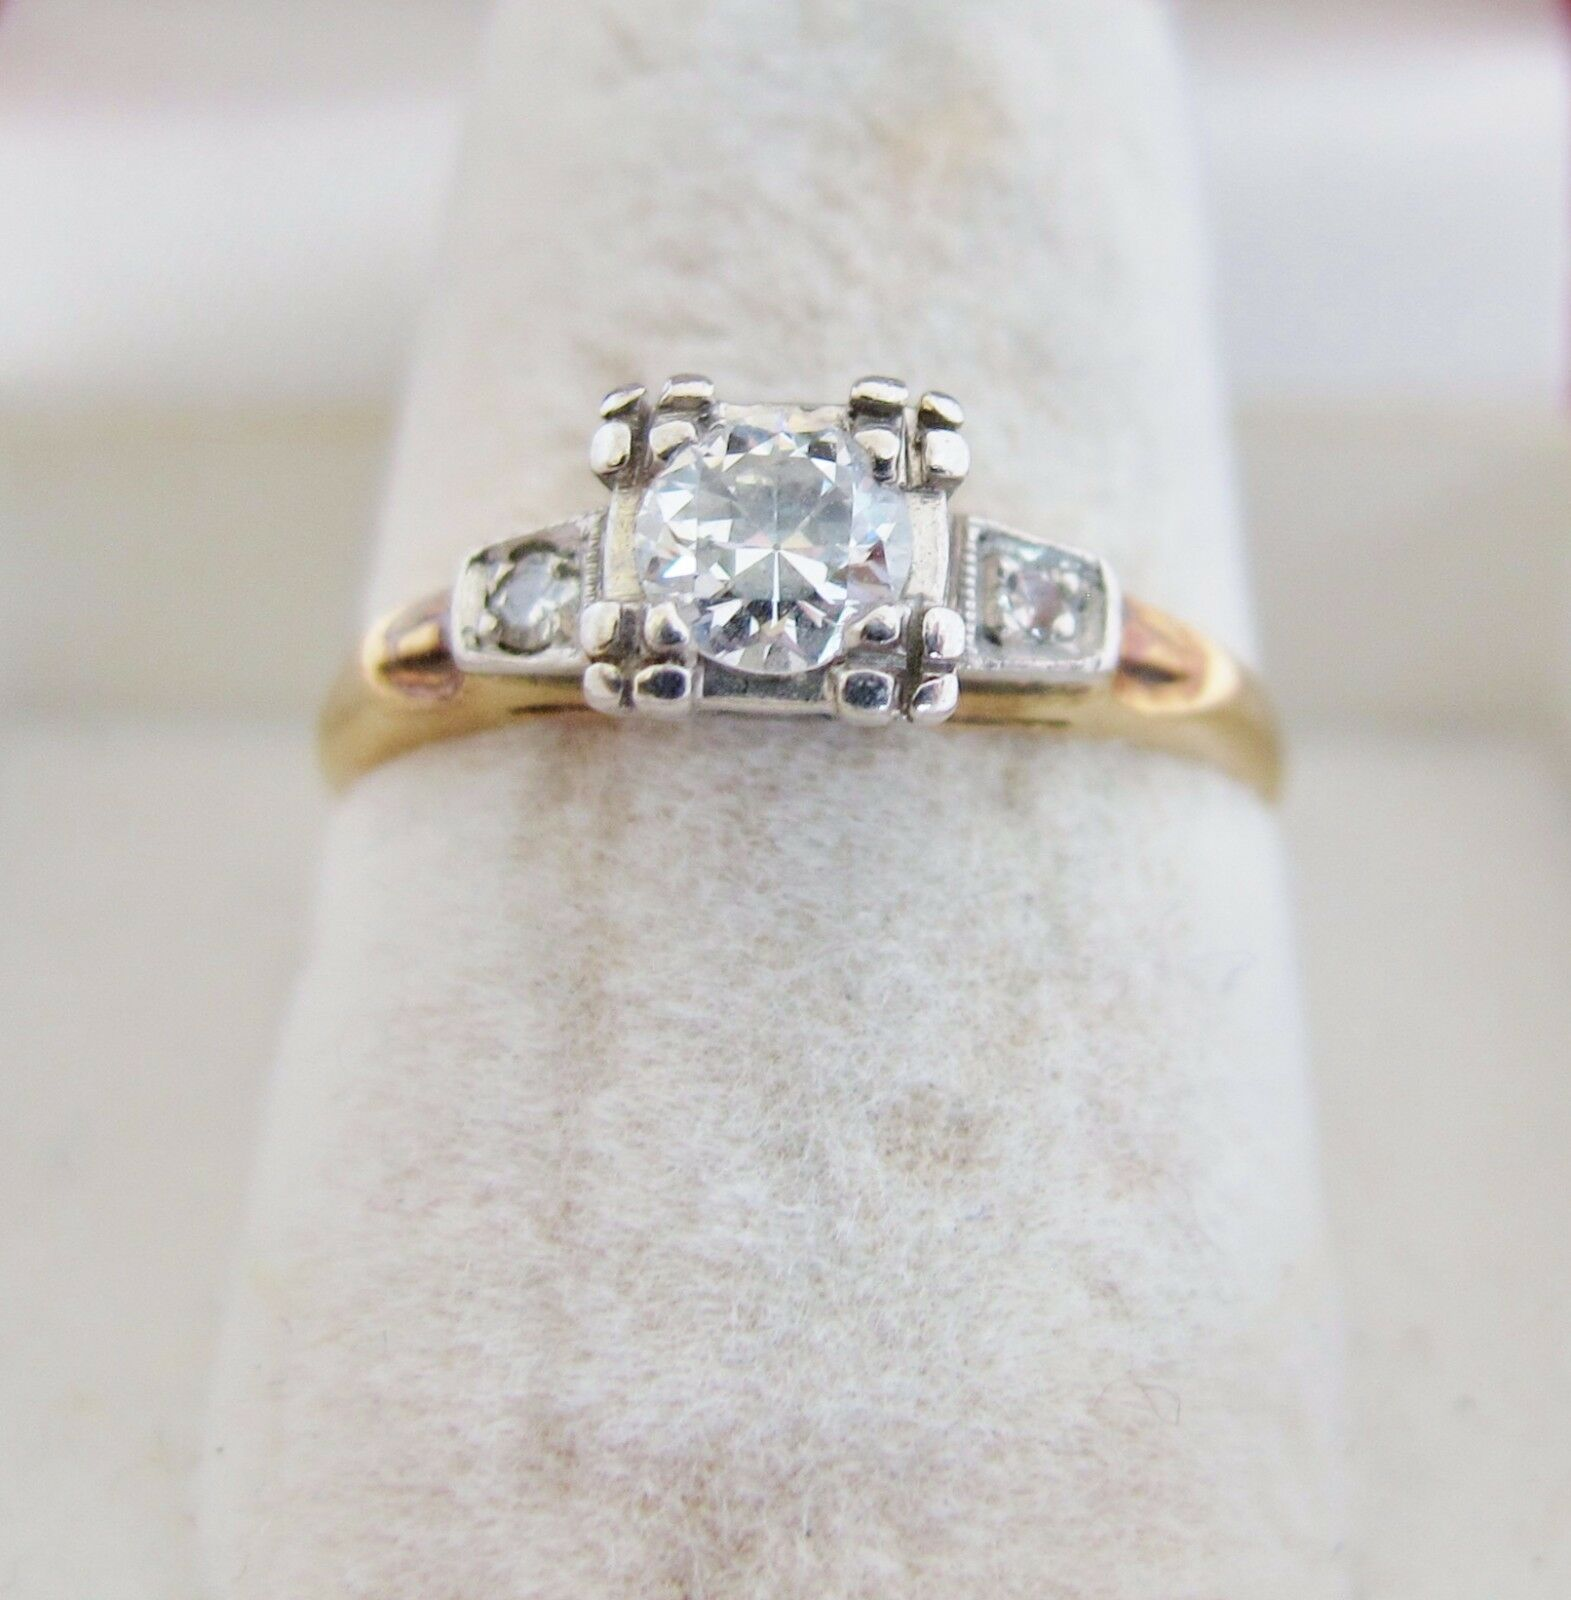 Vintage 14K Yellow gold Engagement Ring with 3 Diamonds  .33 carats (size 6.25)